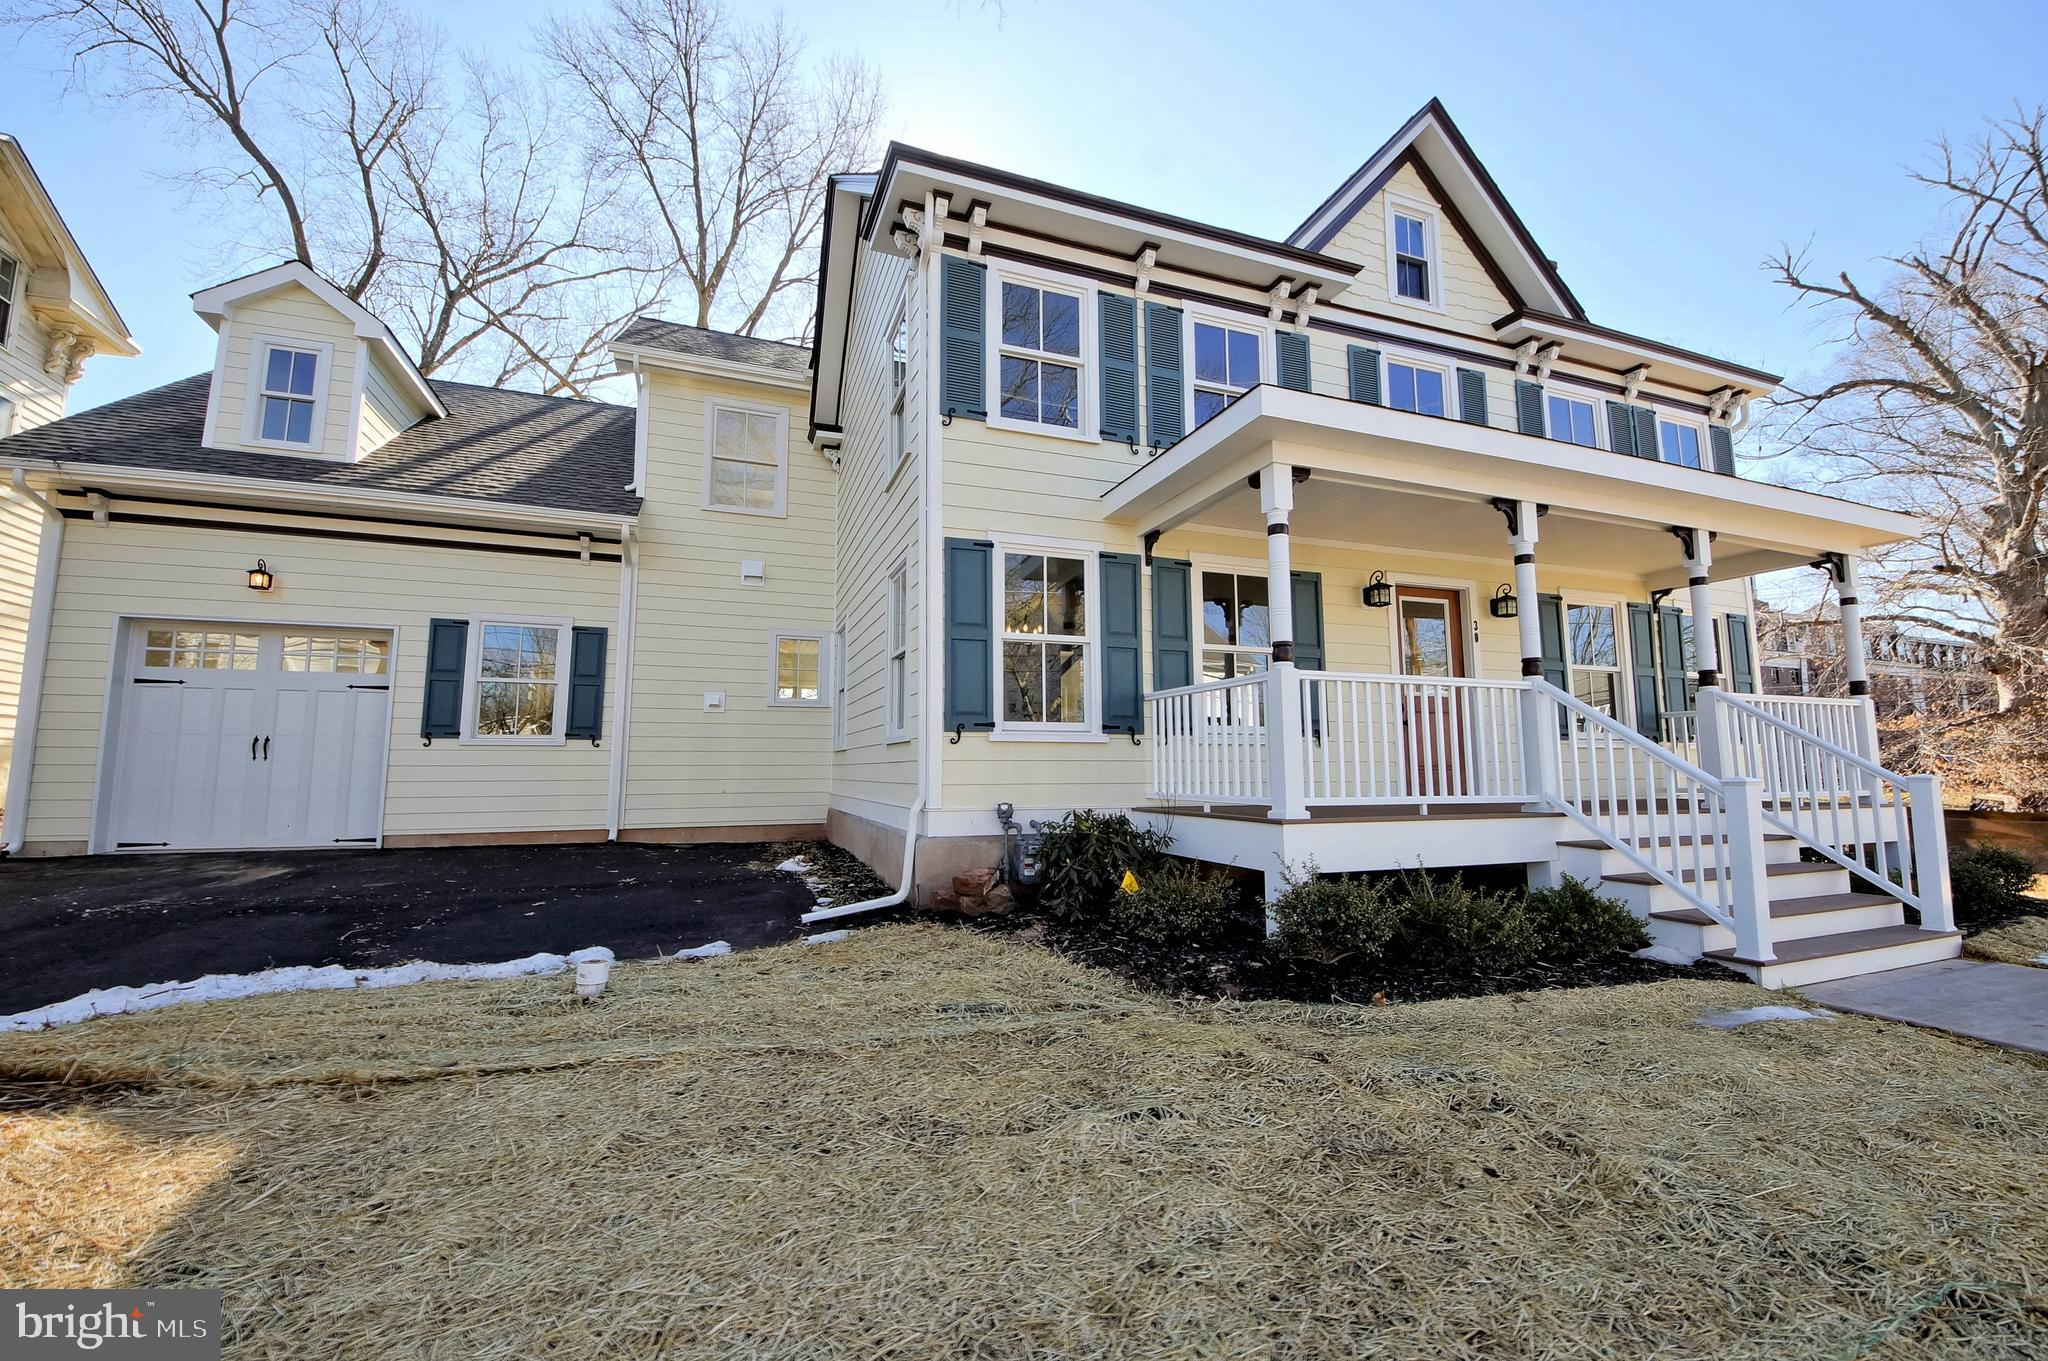 30 W DELAWARE AVENUE, PENNINGTON, NJ 08534